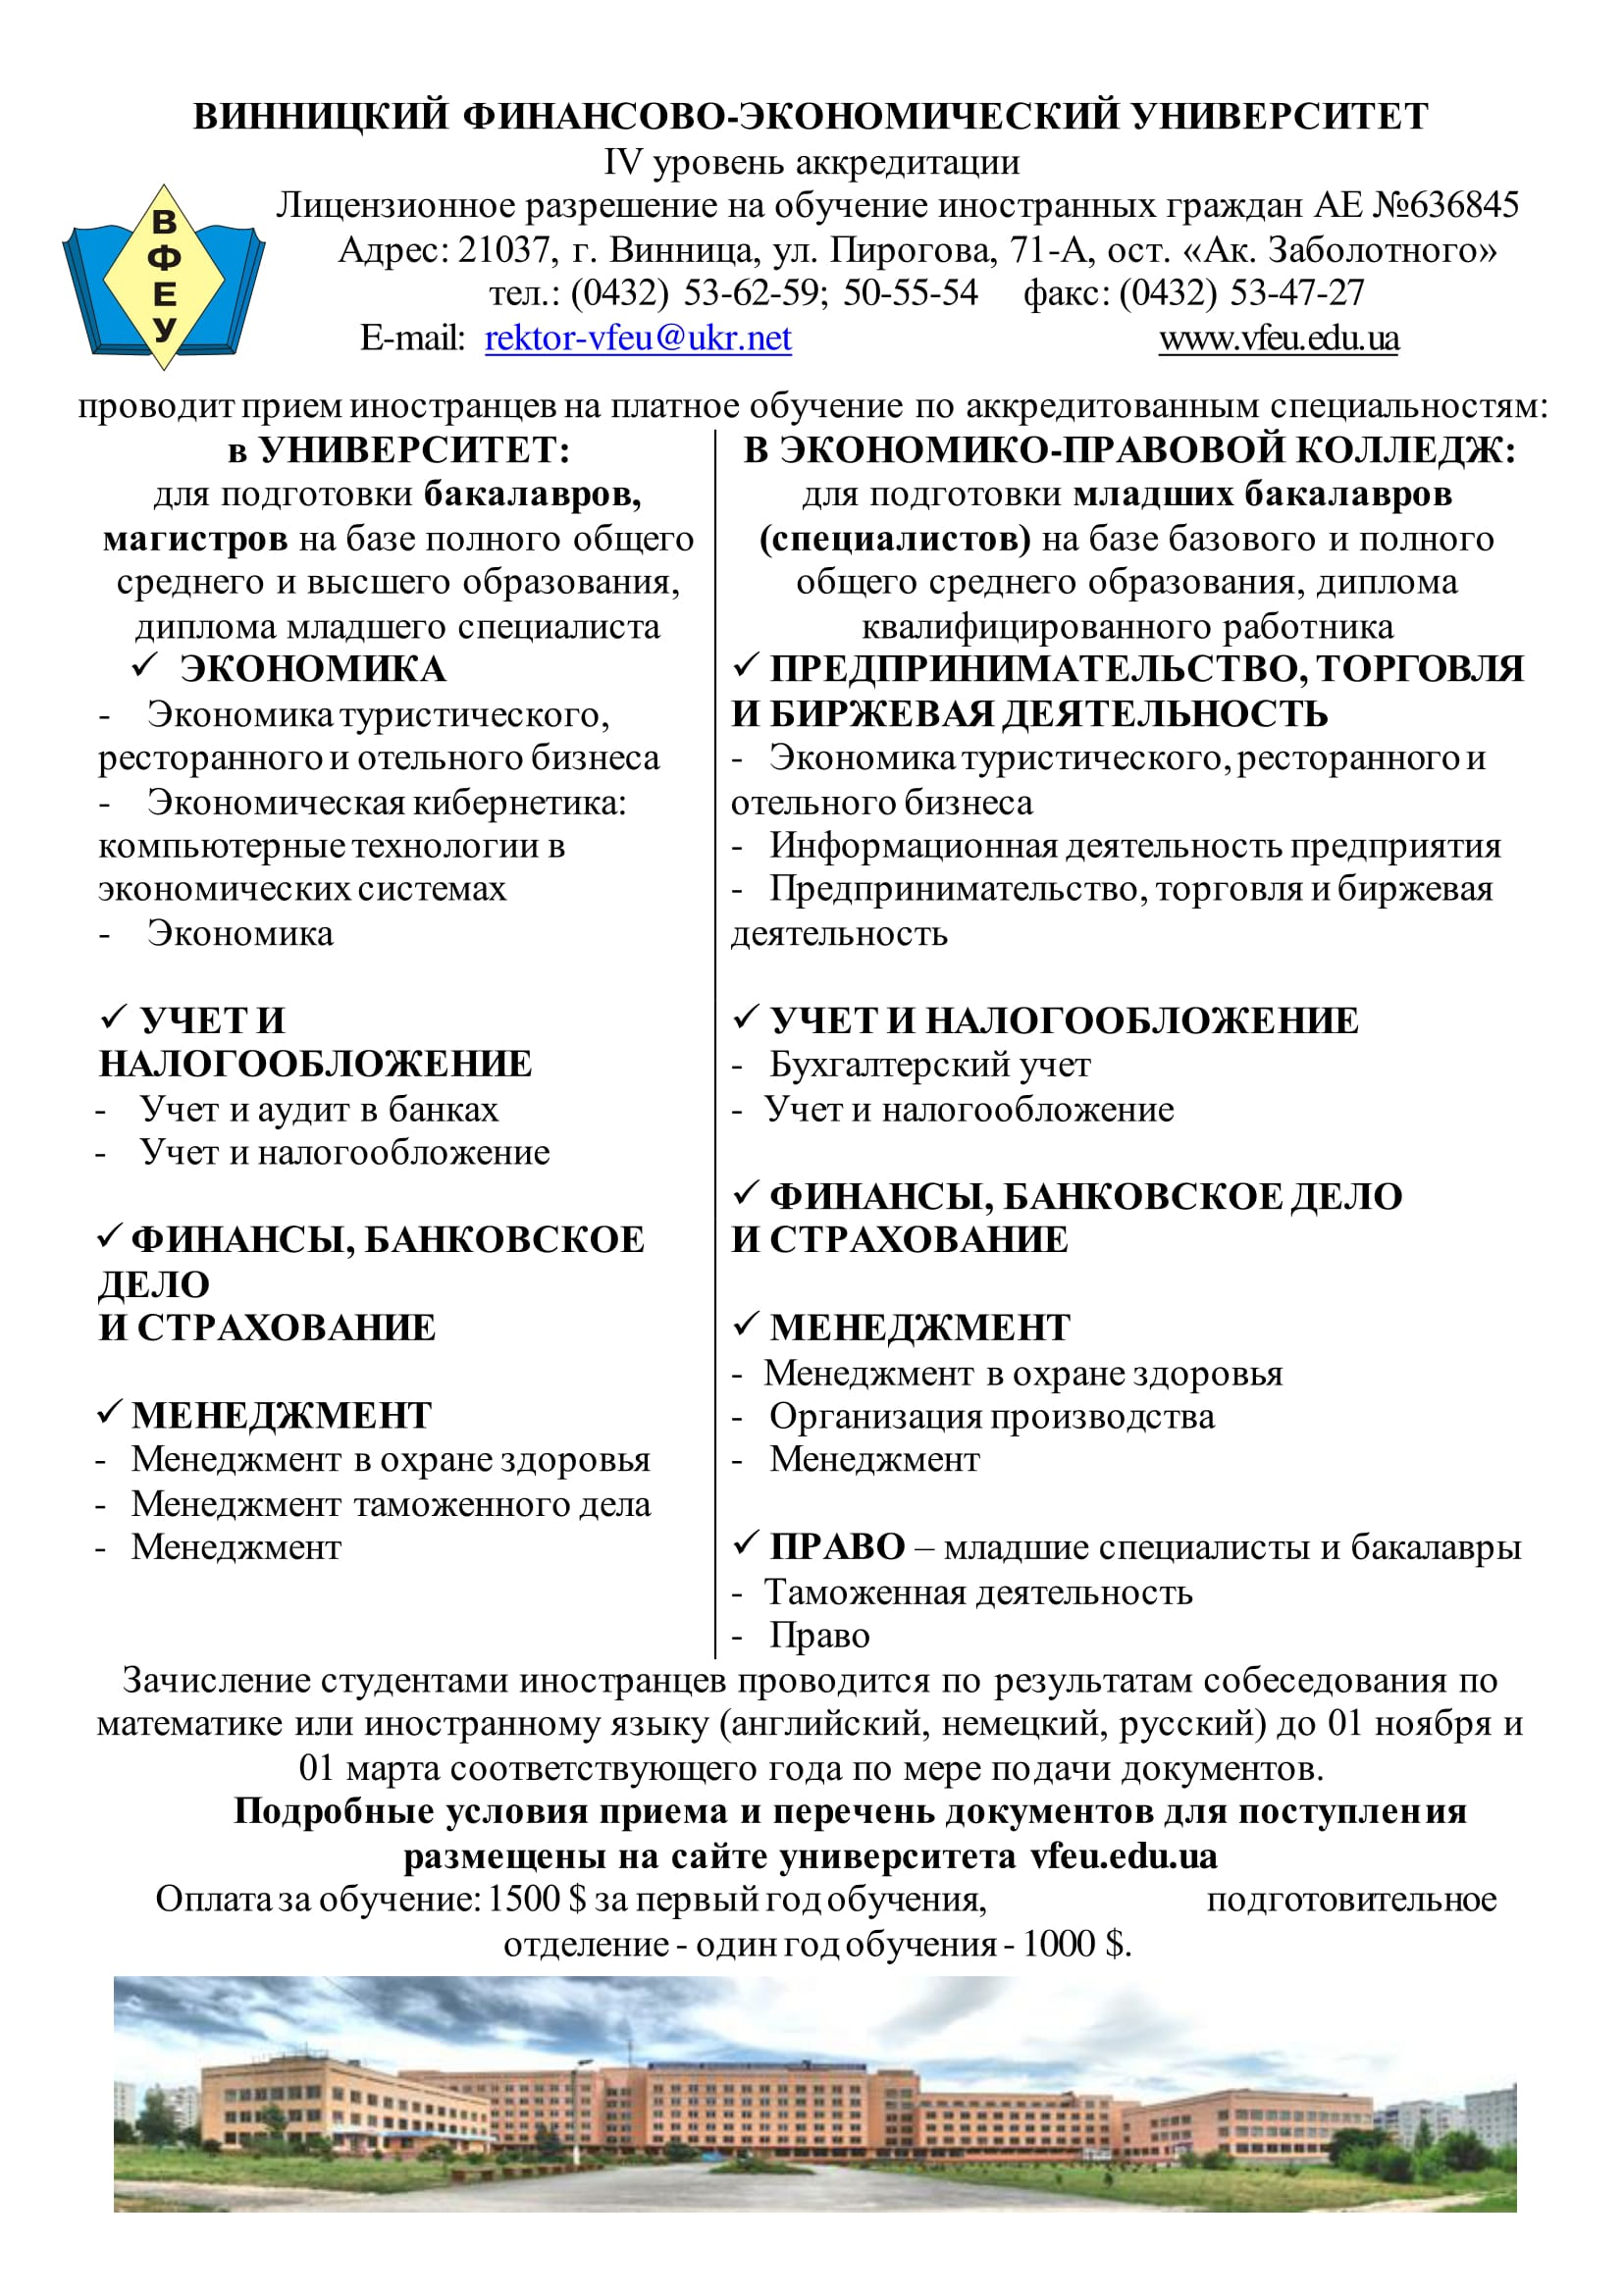 vinnytsya_finance_and_economics_university-2.jpg (442.93 Kb)